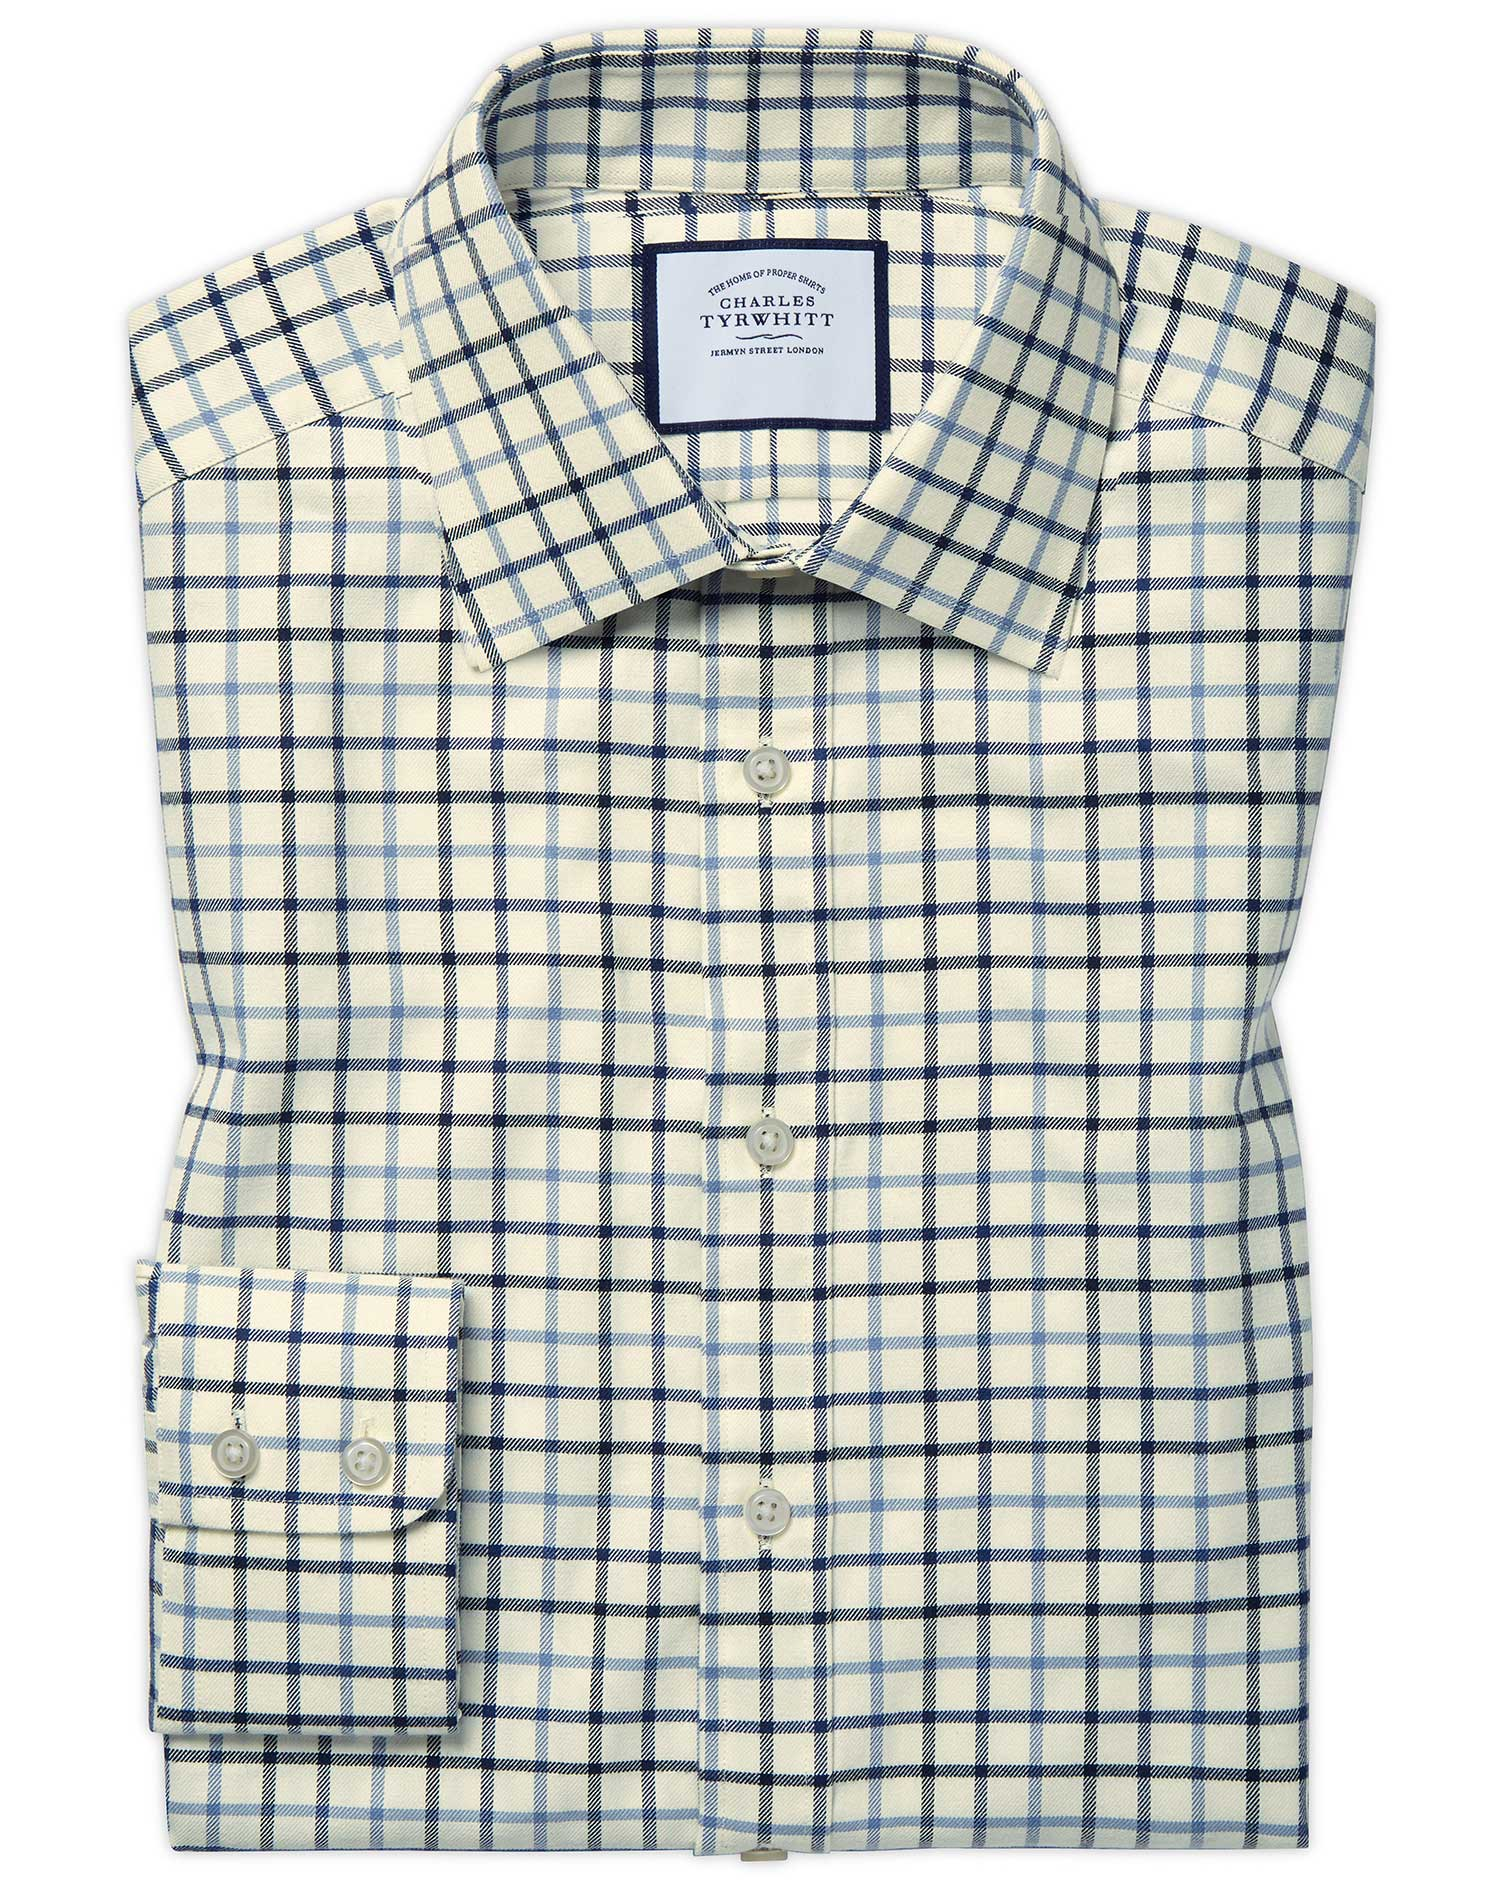 Cotton Classic Fit Country Check Blue Shirt